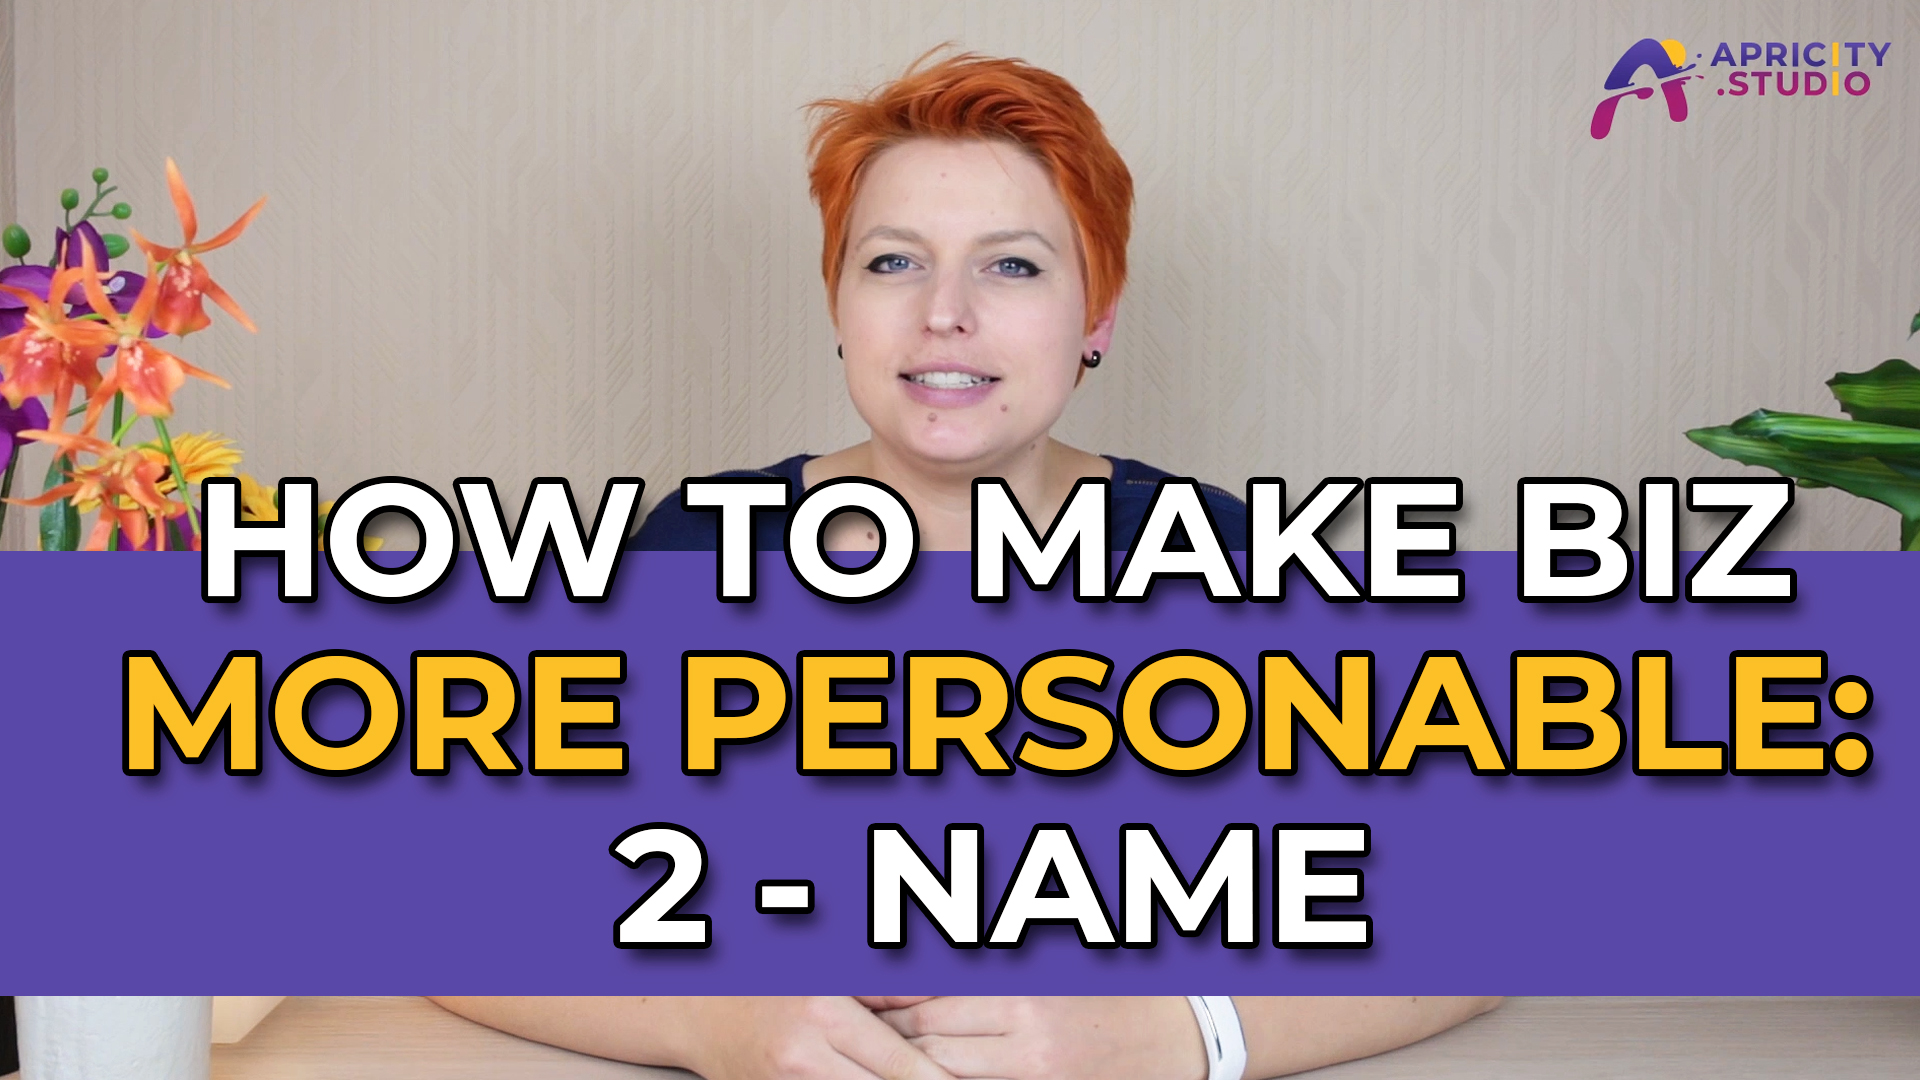 VLOG – How to Make Business More Personable: the Name